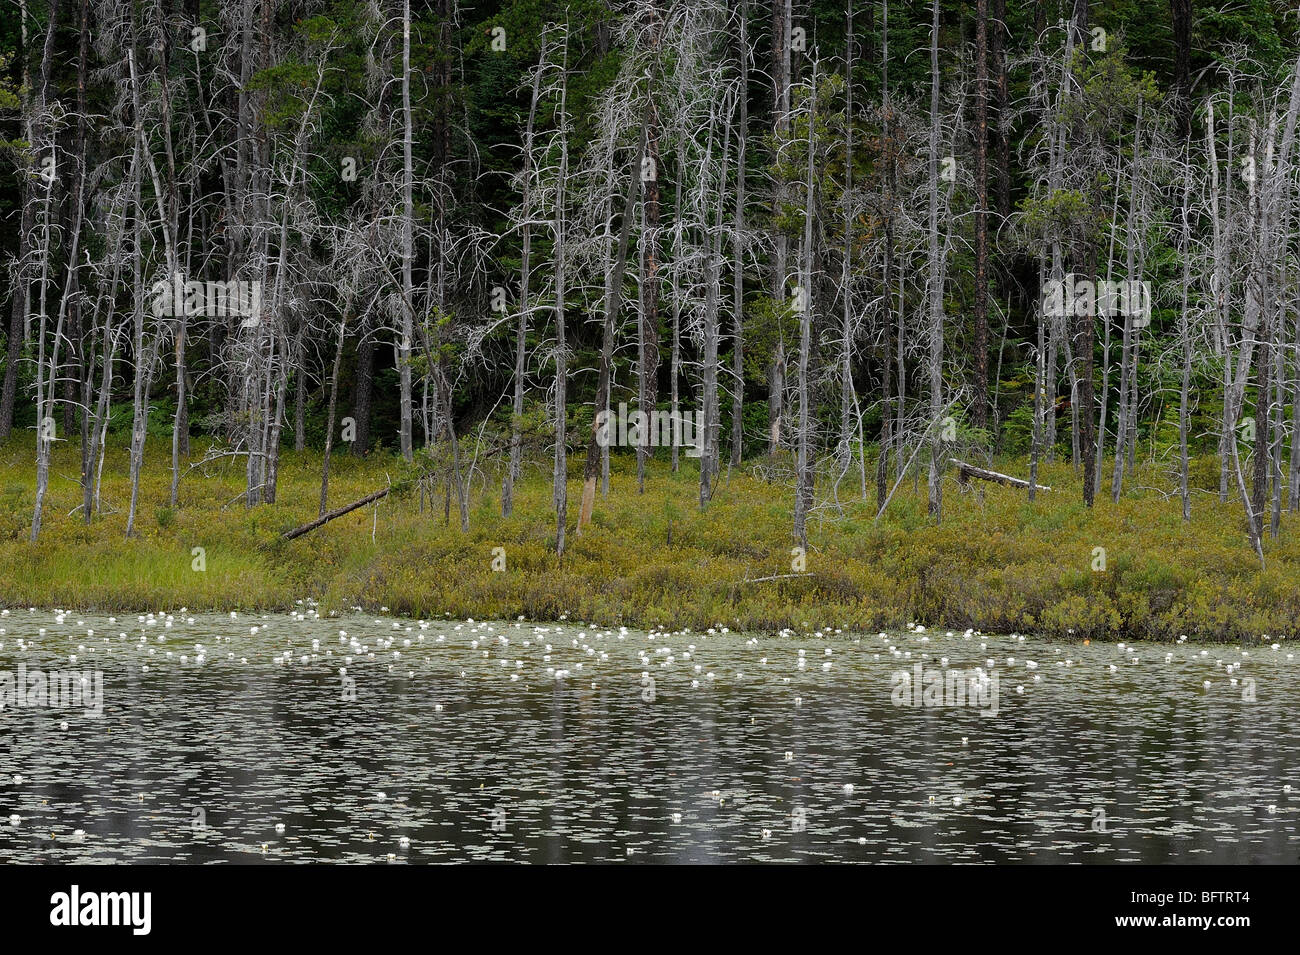 Boreal pond with dead snags and fragrant white water lilies, Greater Sudbury, Ontario, Canada - Stock Image